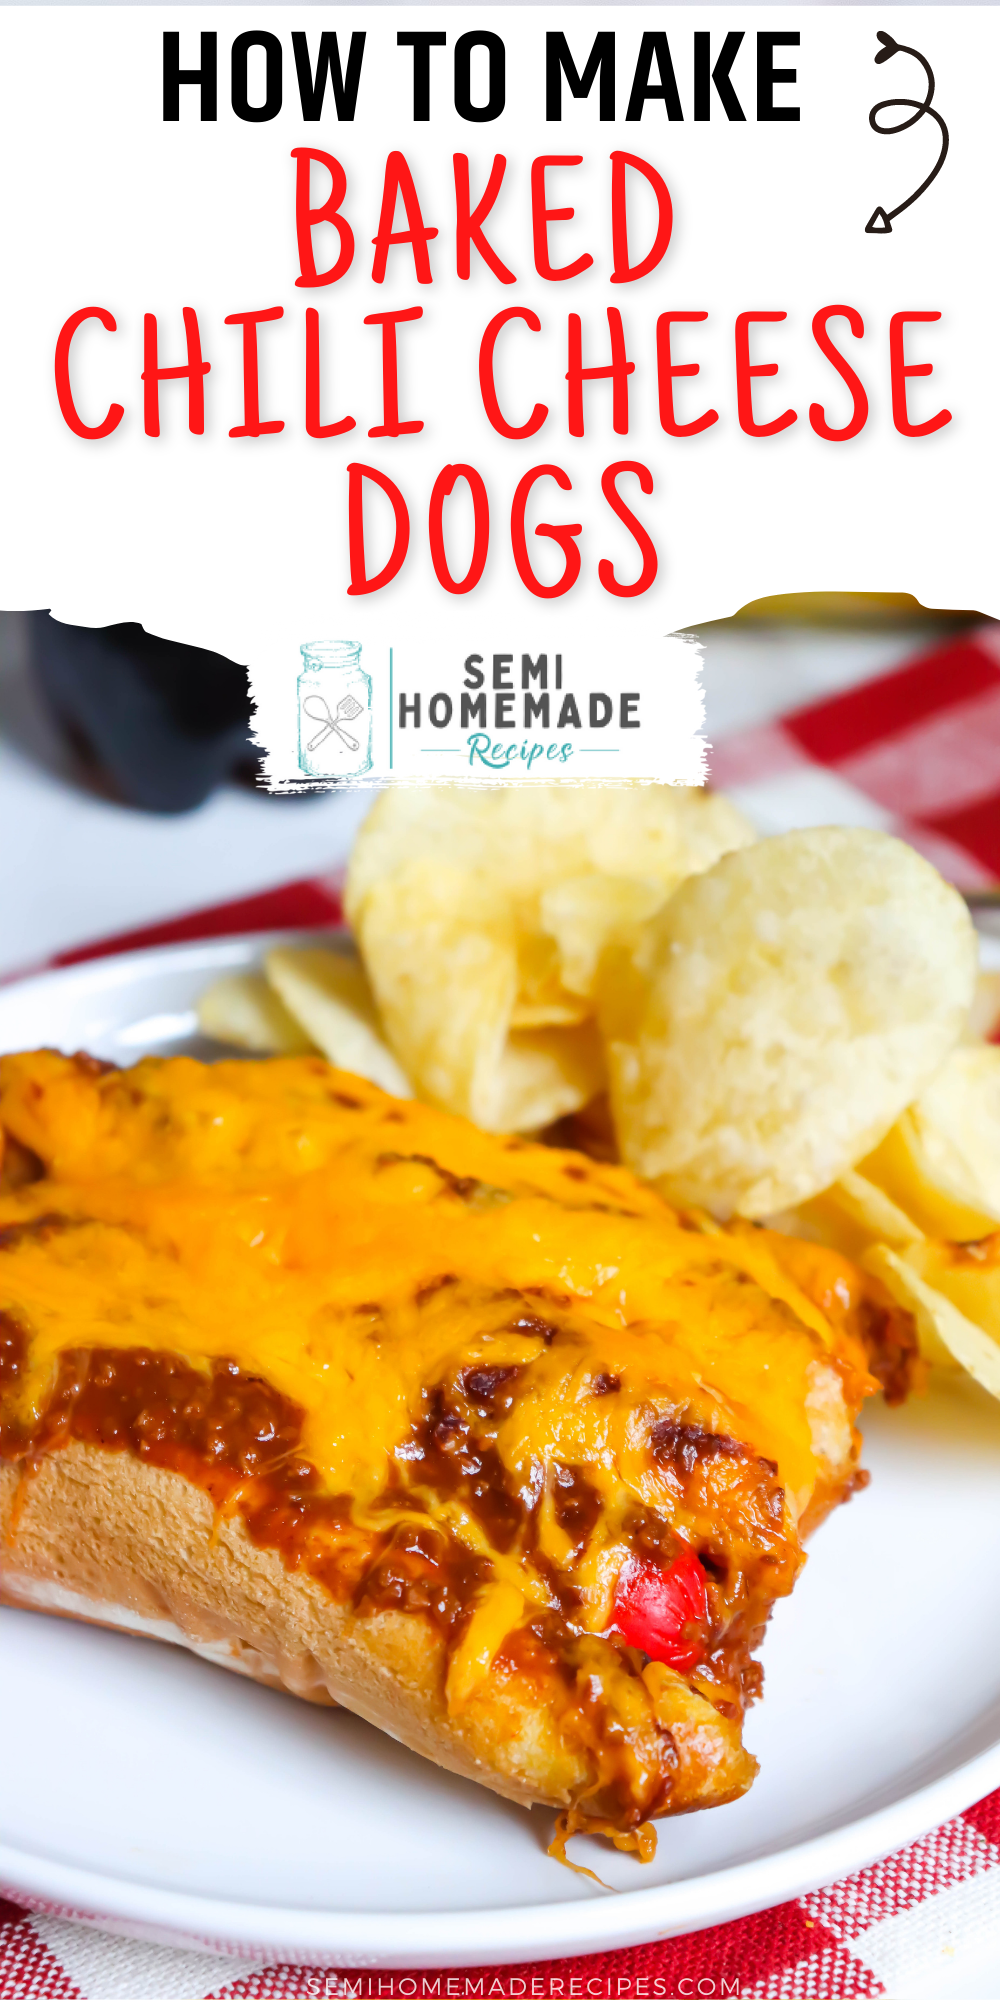 Cheesy, Chili covered Hot Dogs that are baked in the oven! These Baked Chili Cheese Dogs are delicious and so easy to make!